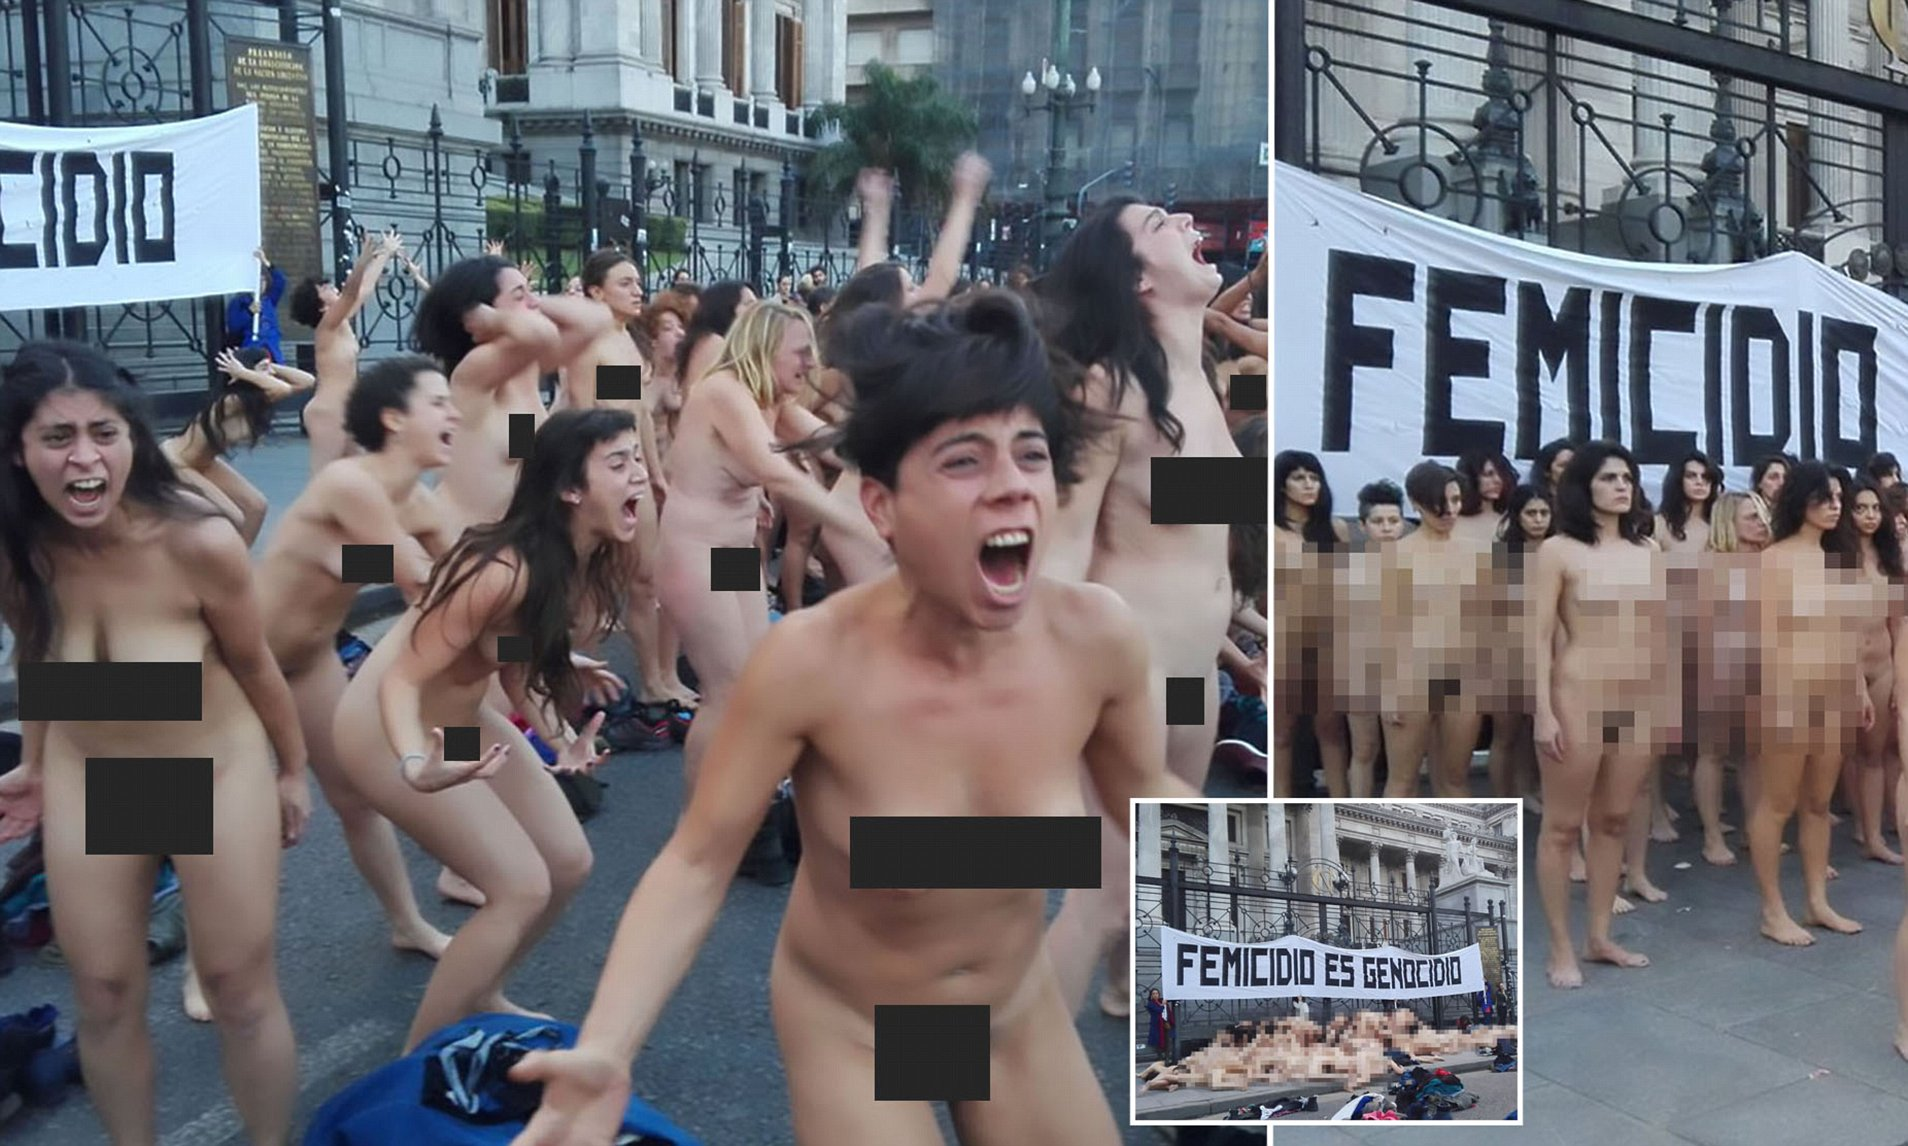 Hairy nude women protest